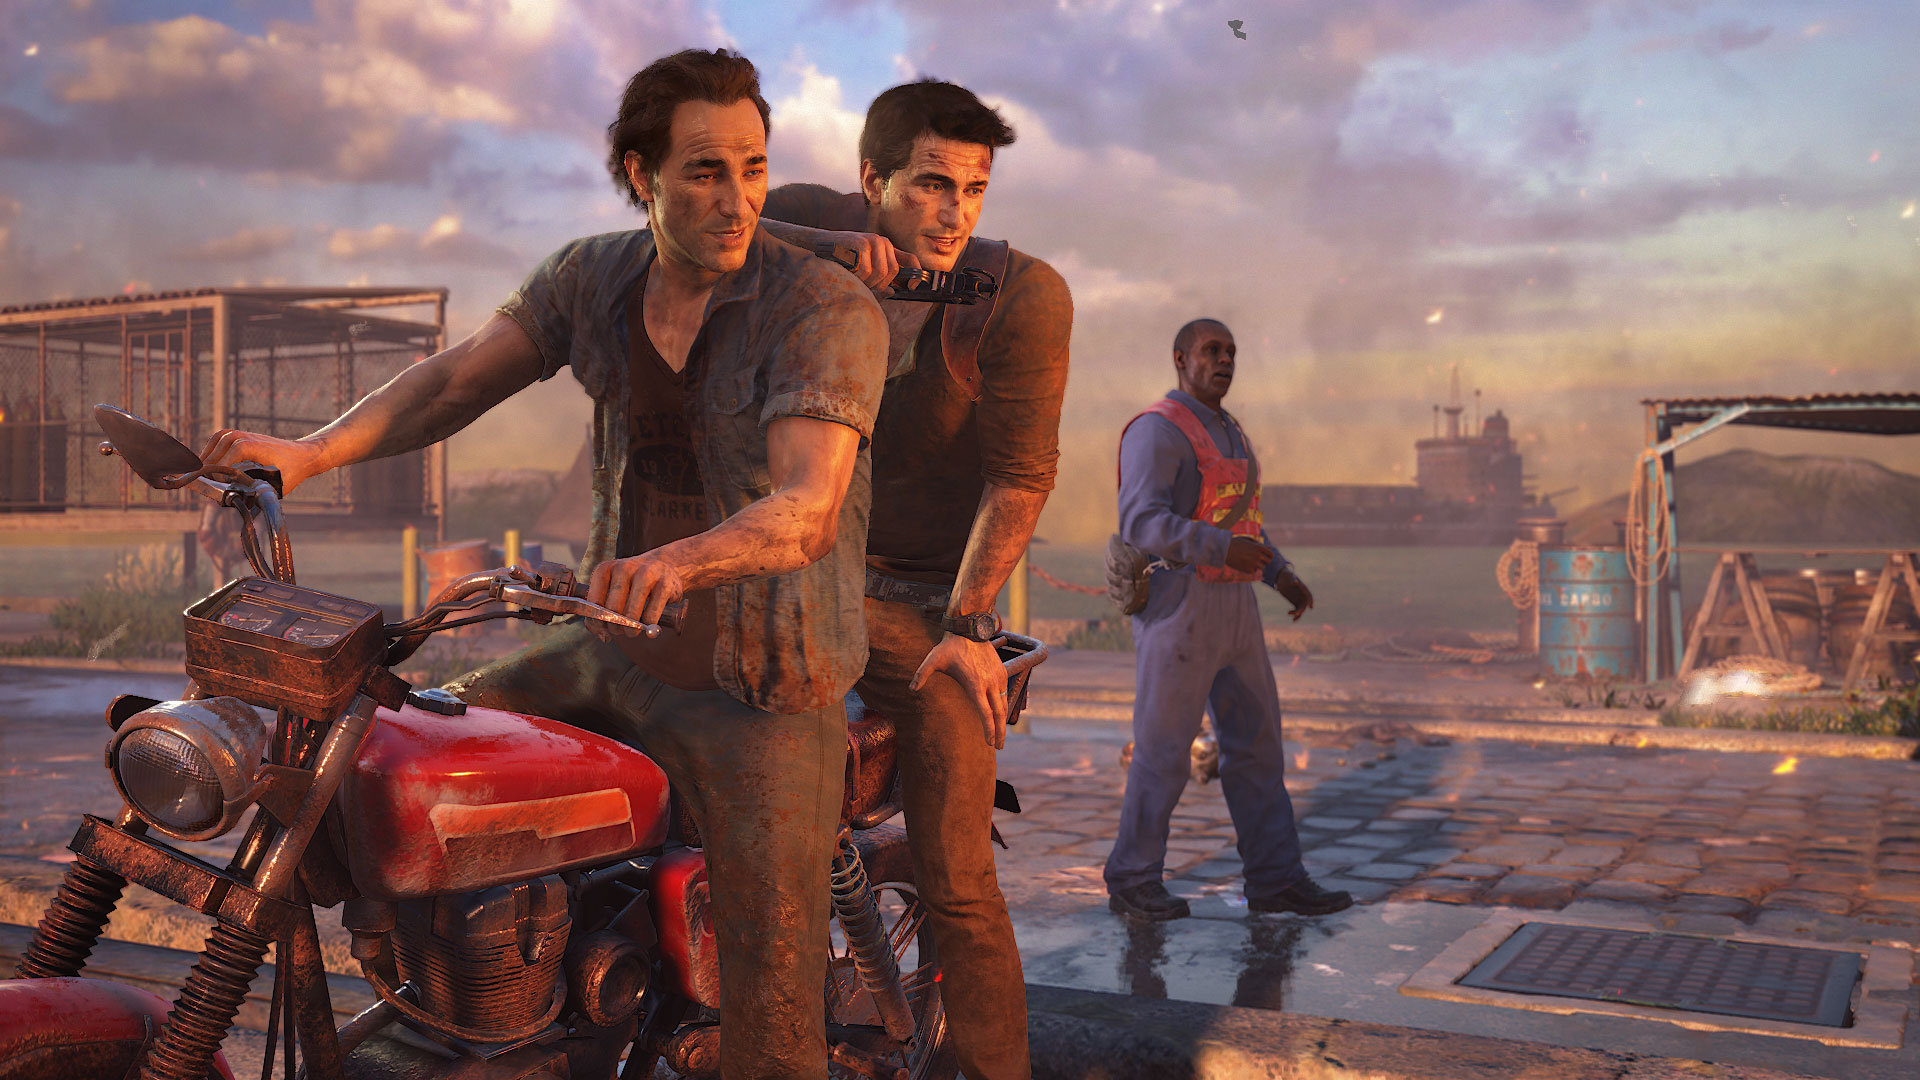 Uncharted 4, PS4, 01 EU 23/06/2015 (1920x1080)